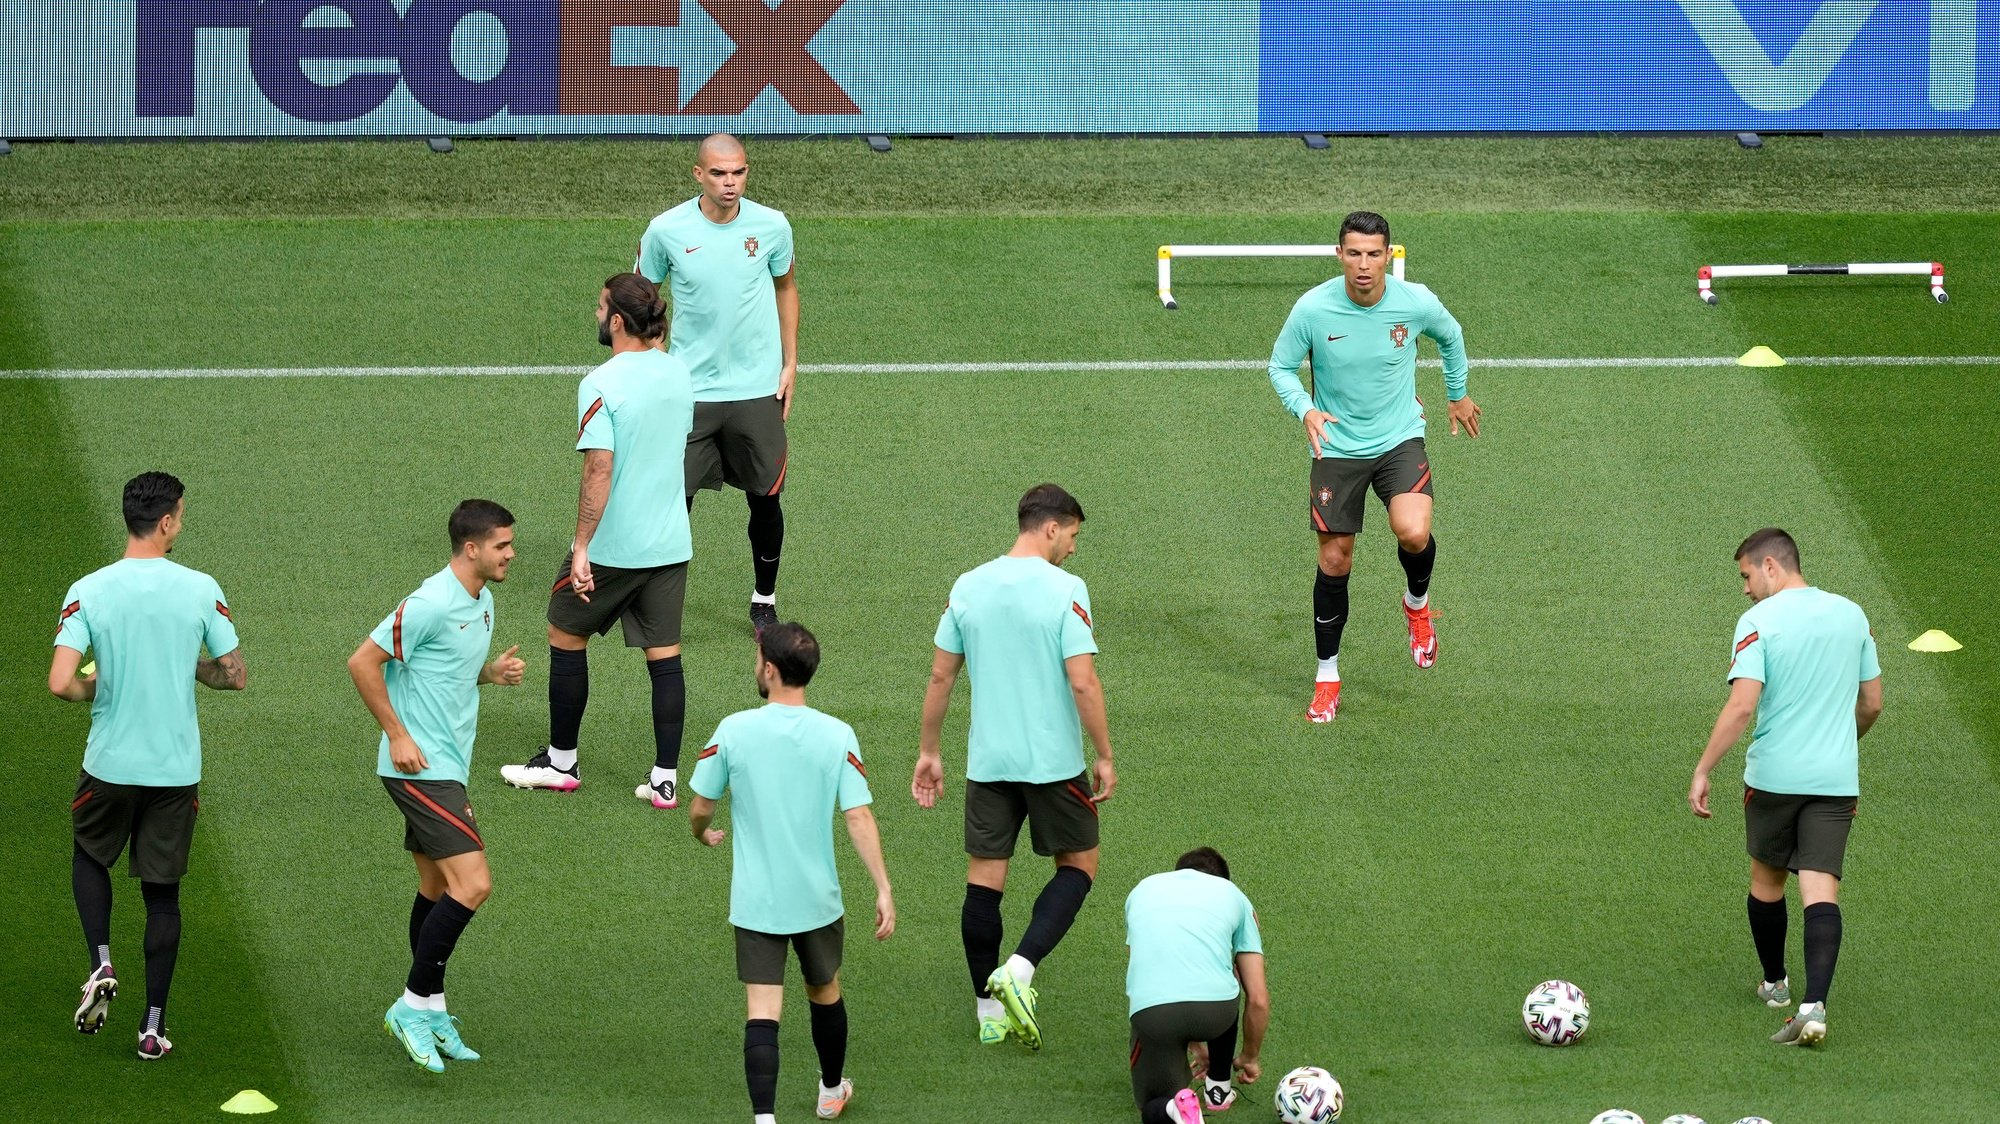 Portugal´s national soccer team players in action during a training session at Puskás Aréna, Hungay, 14 June 2021. Portugal will face Hungay in their UEFA EURO 2020 group F round soccer match on 15 June 2021. HUGO DELGADO/LUSA